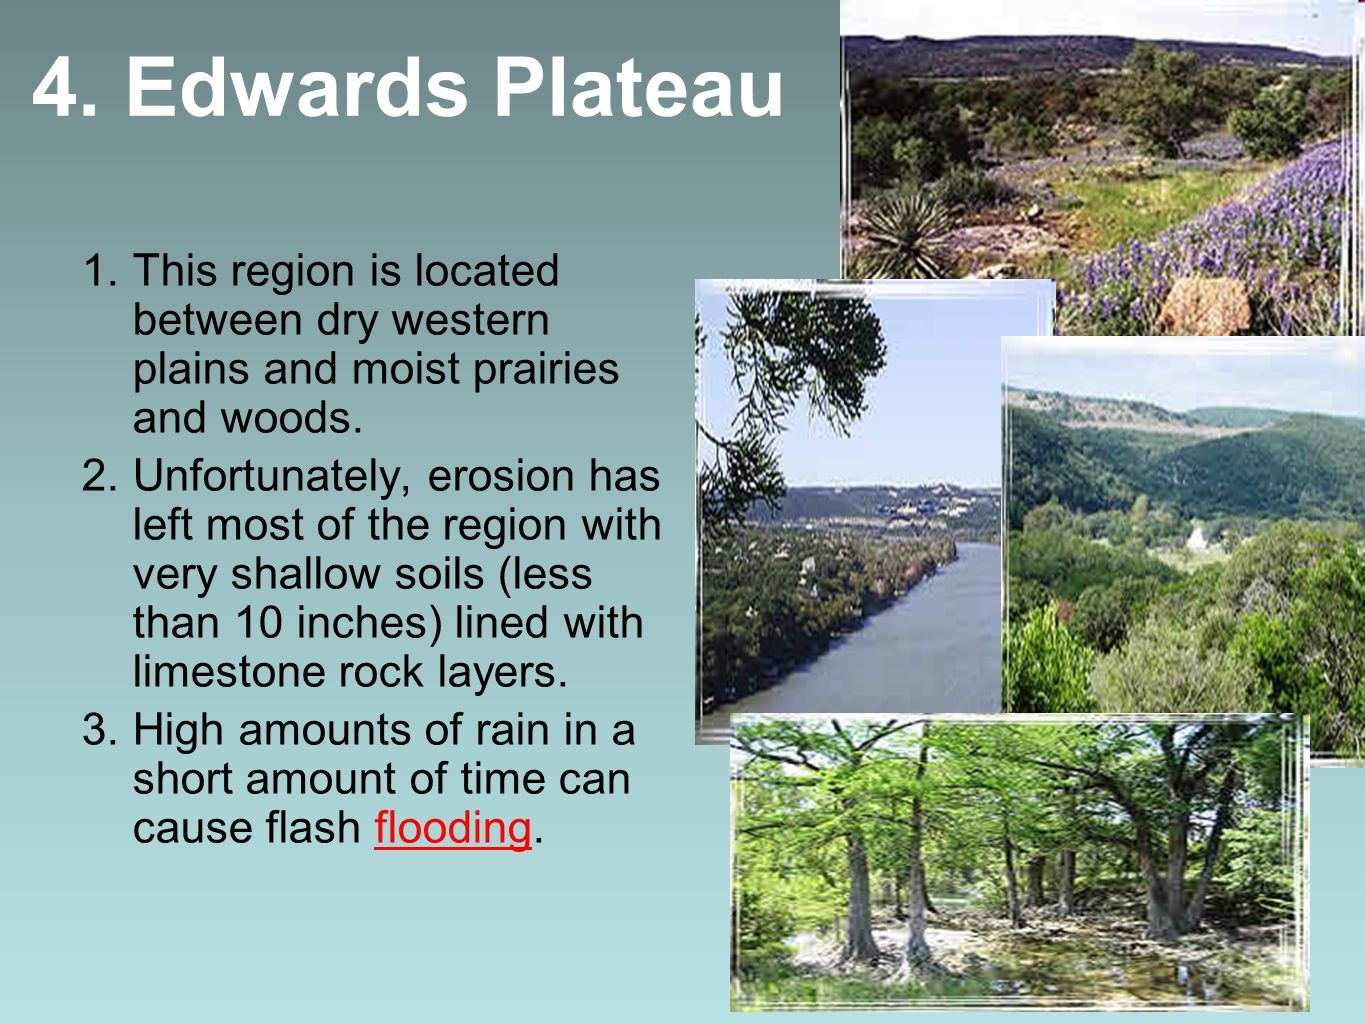 4. Edwards Plateau This region is located between dry western plains and moist prairies and woods.